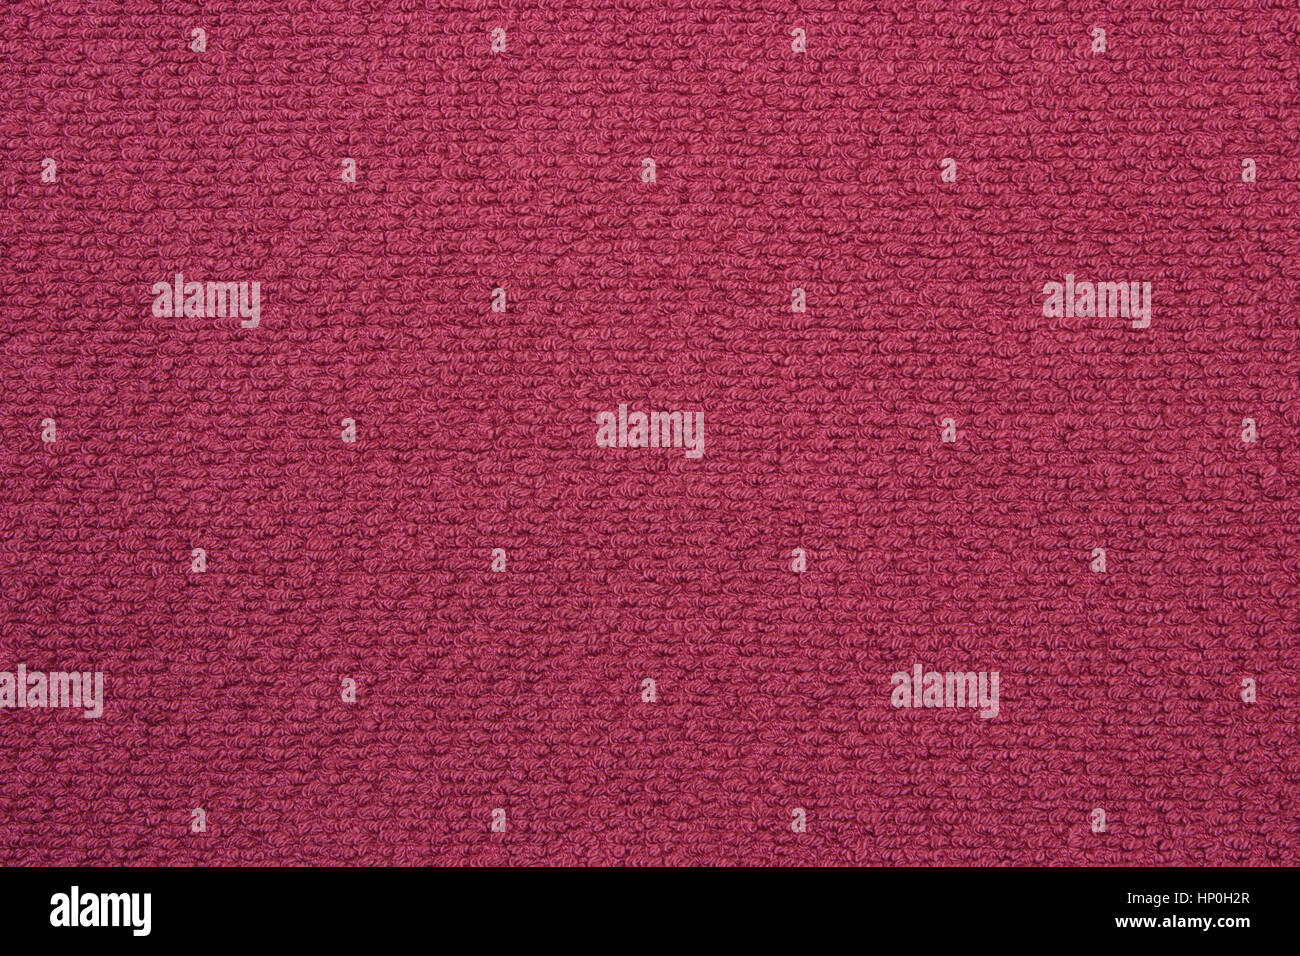 Structure of fluffy and softness towel as background texture, fabric as backdrop - Stock Image